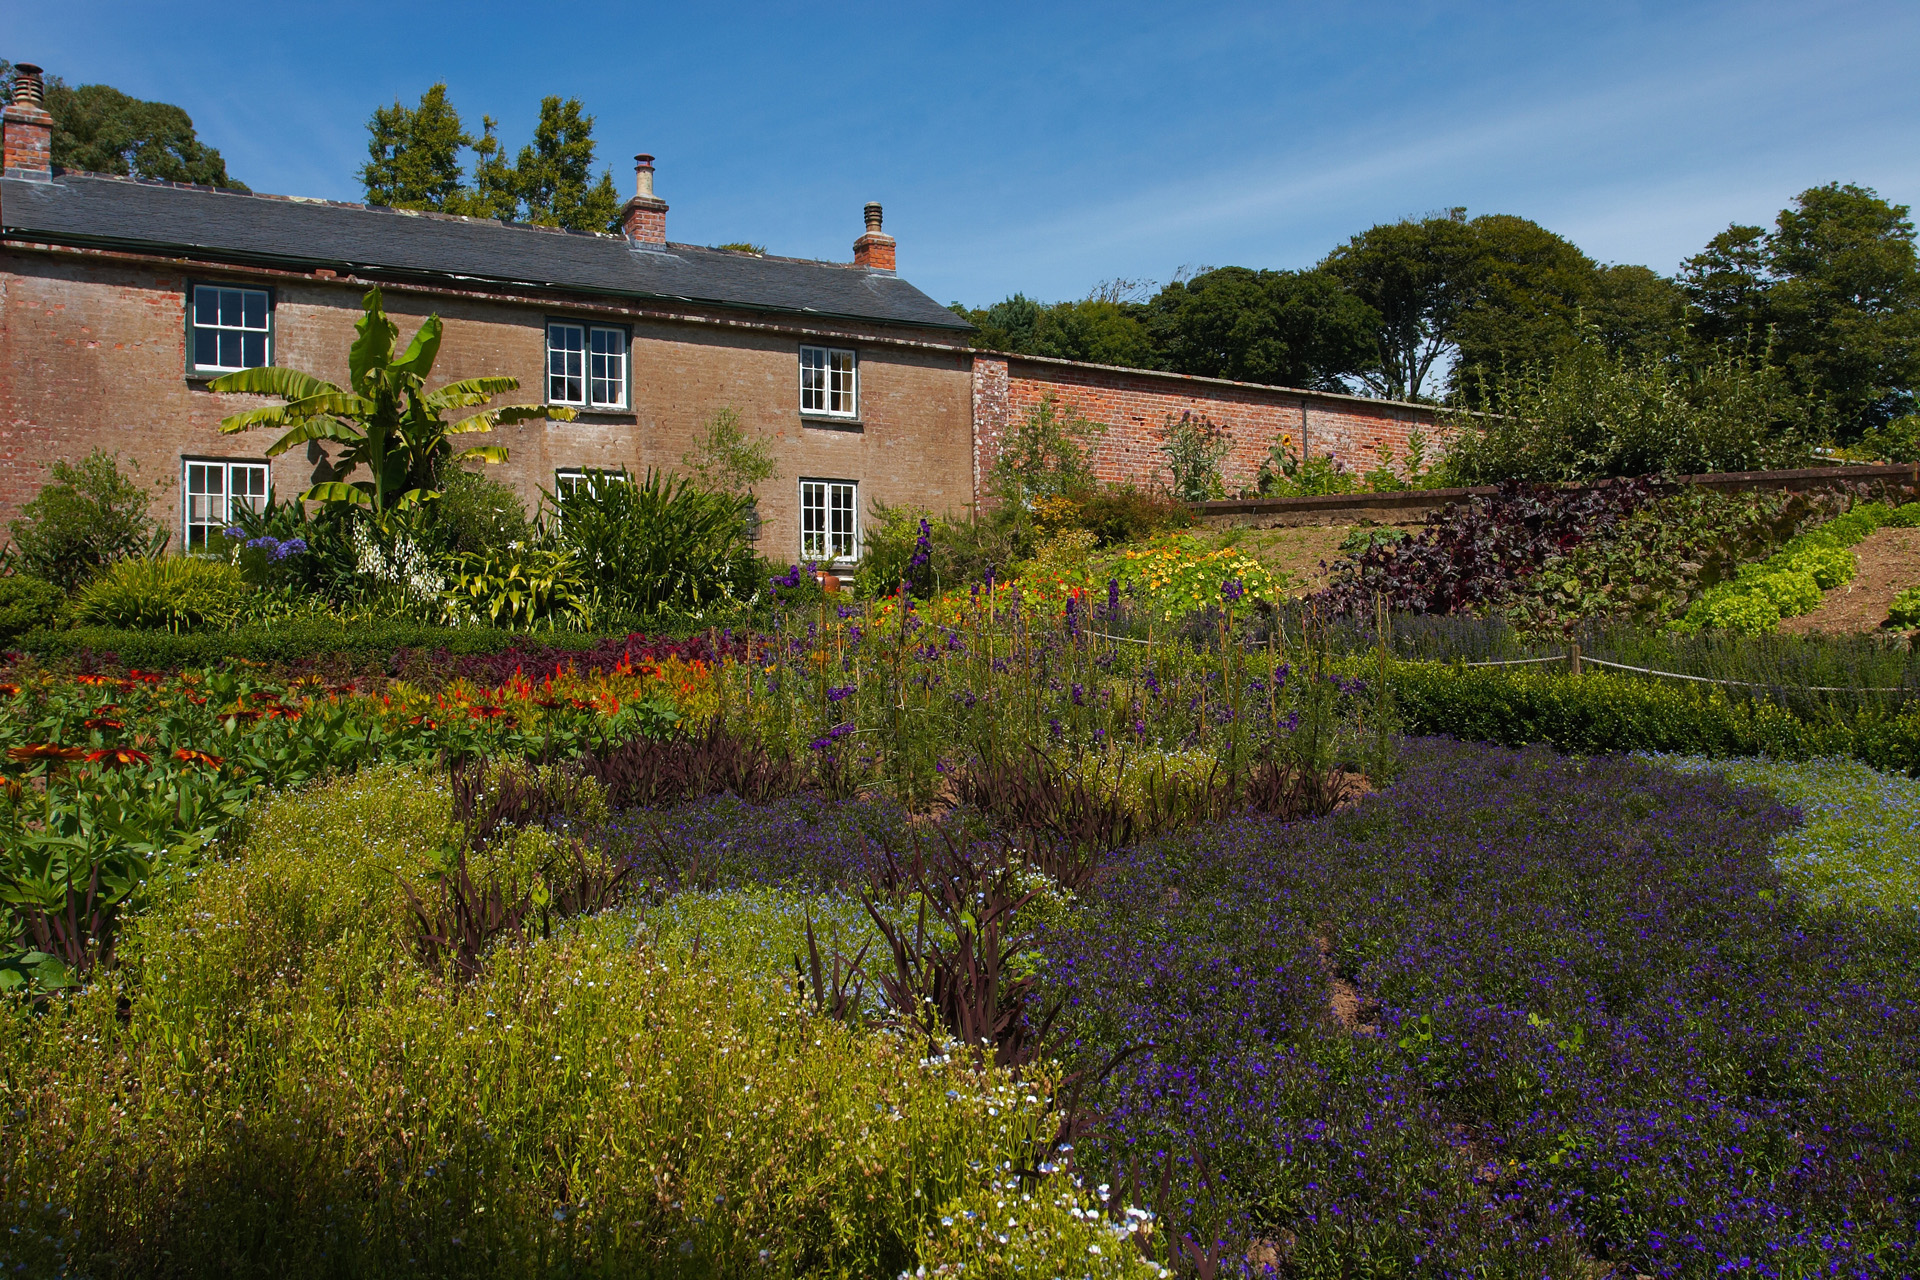 The walled kitchen garden at Trengwainton Garden